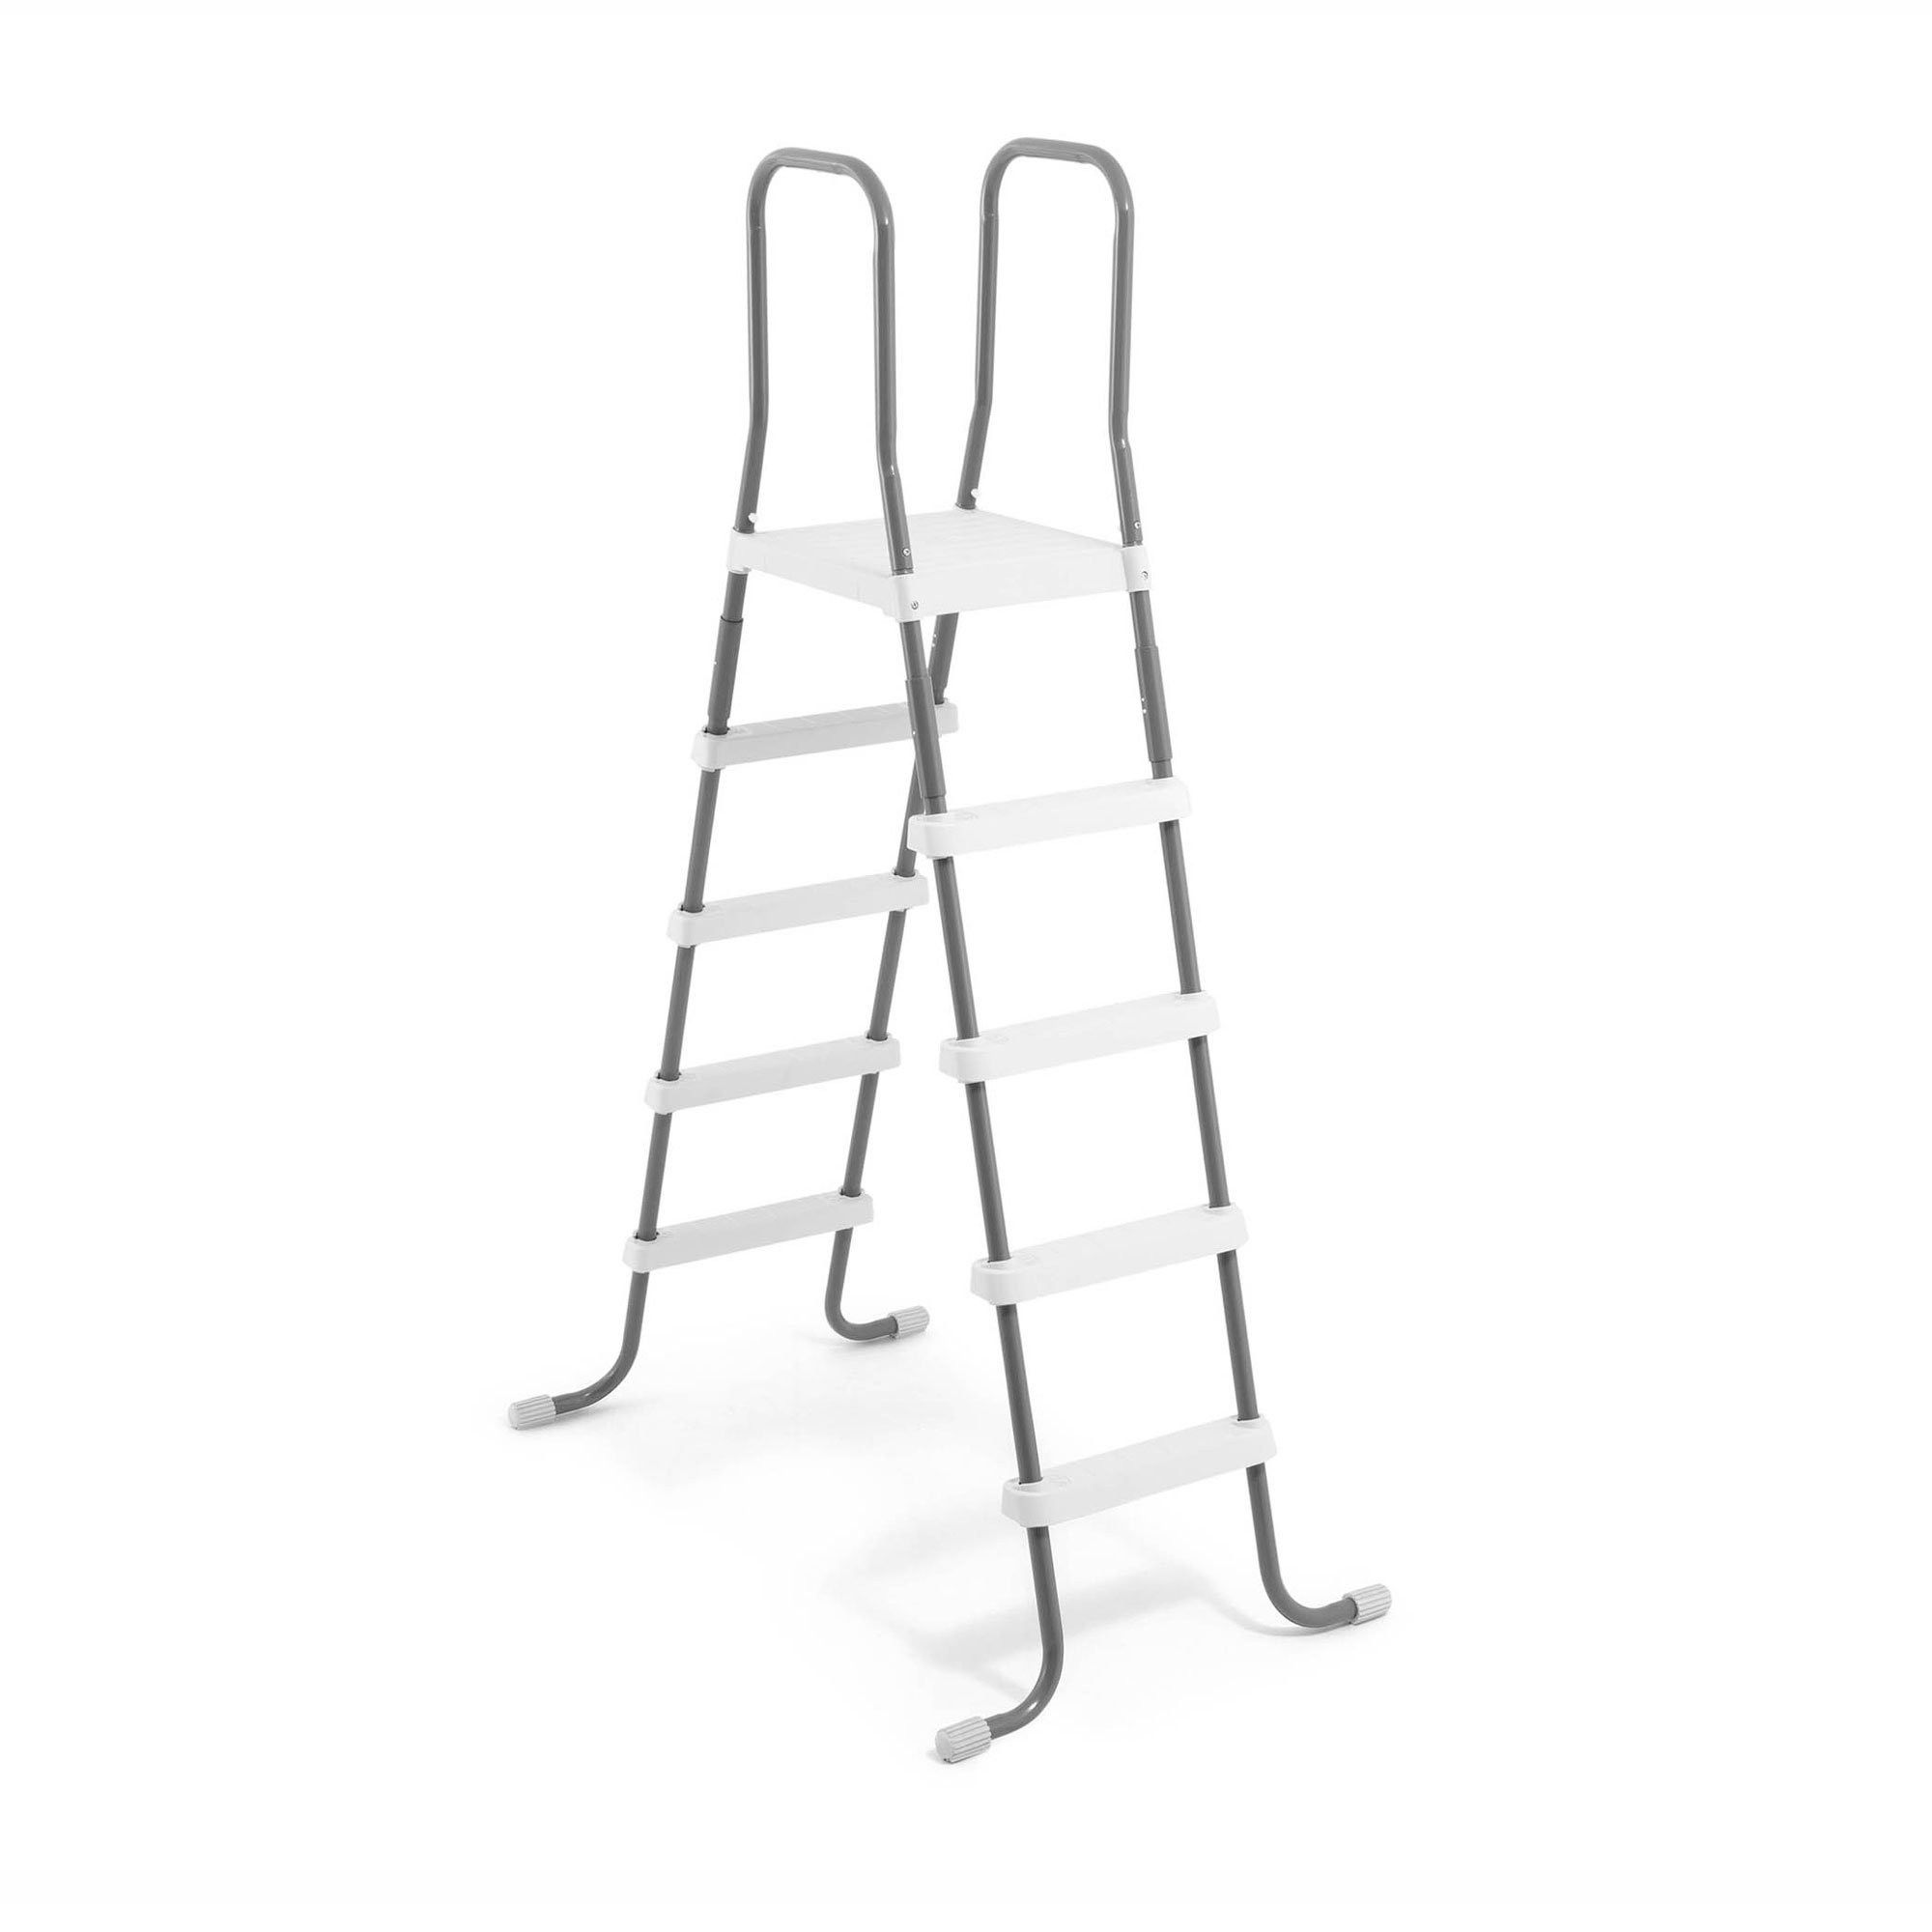 Intex Steel Frame Above Ground Swimming Pool Ladder For 58 ...